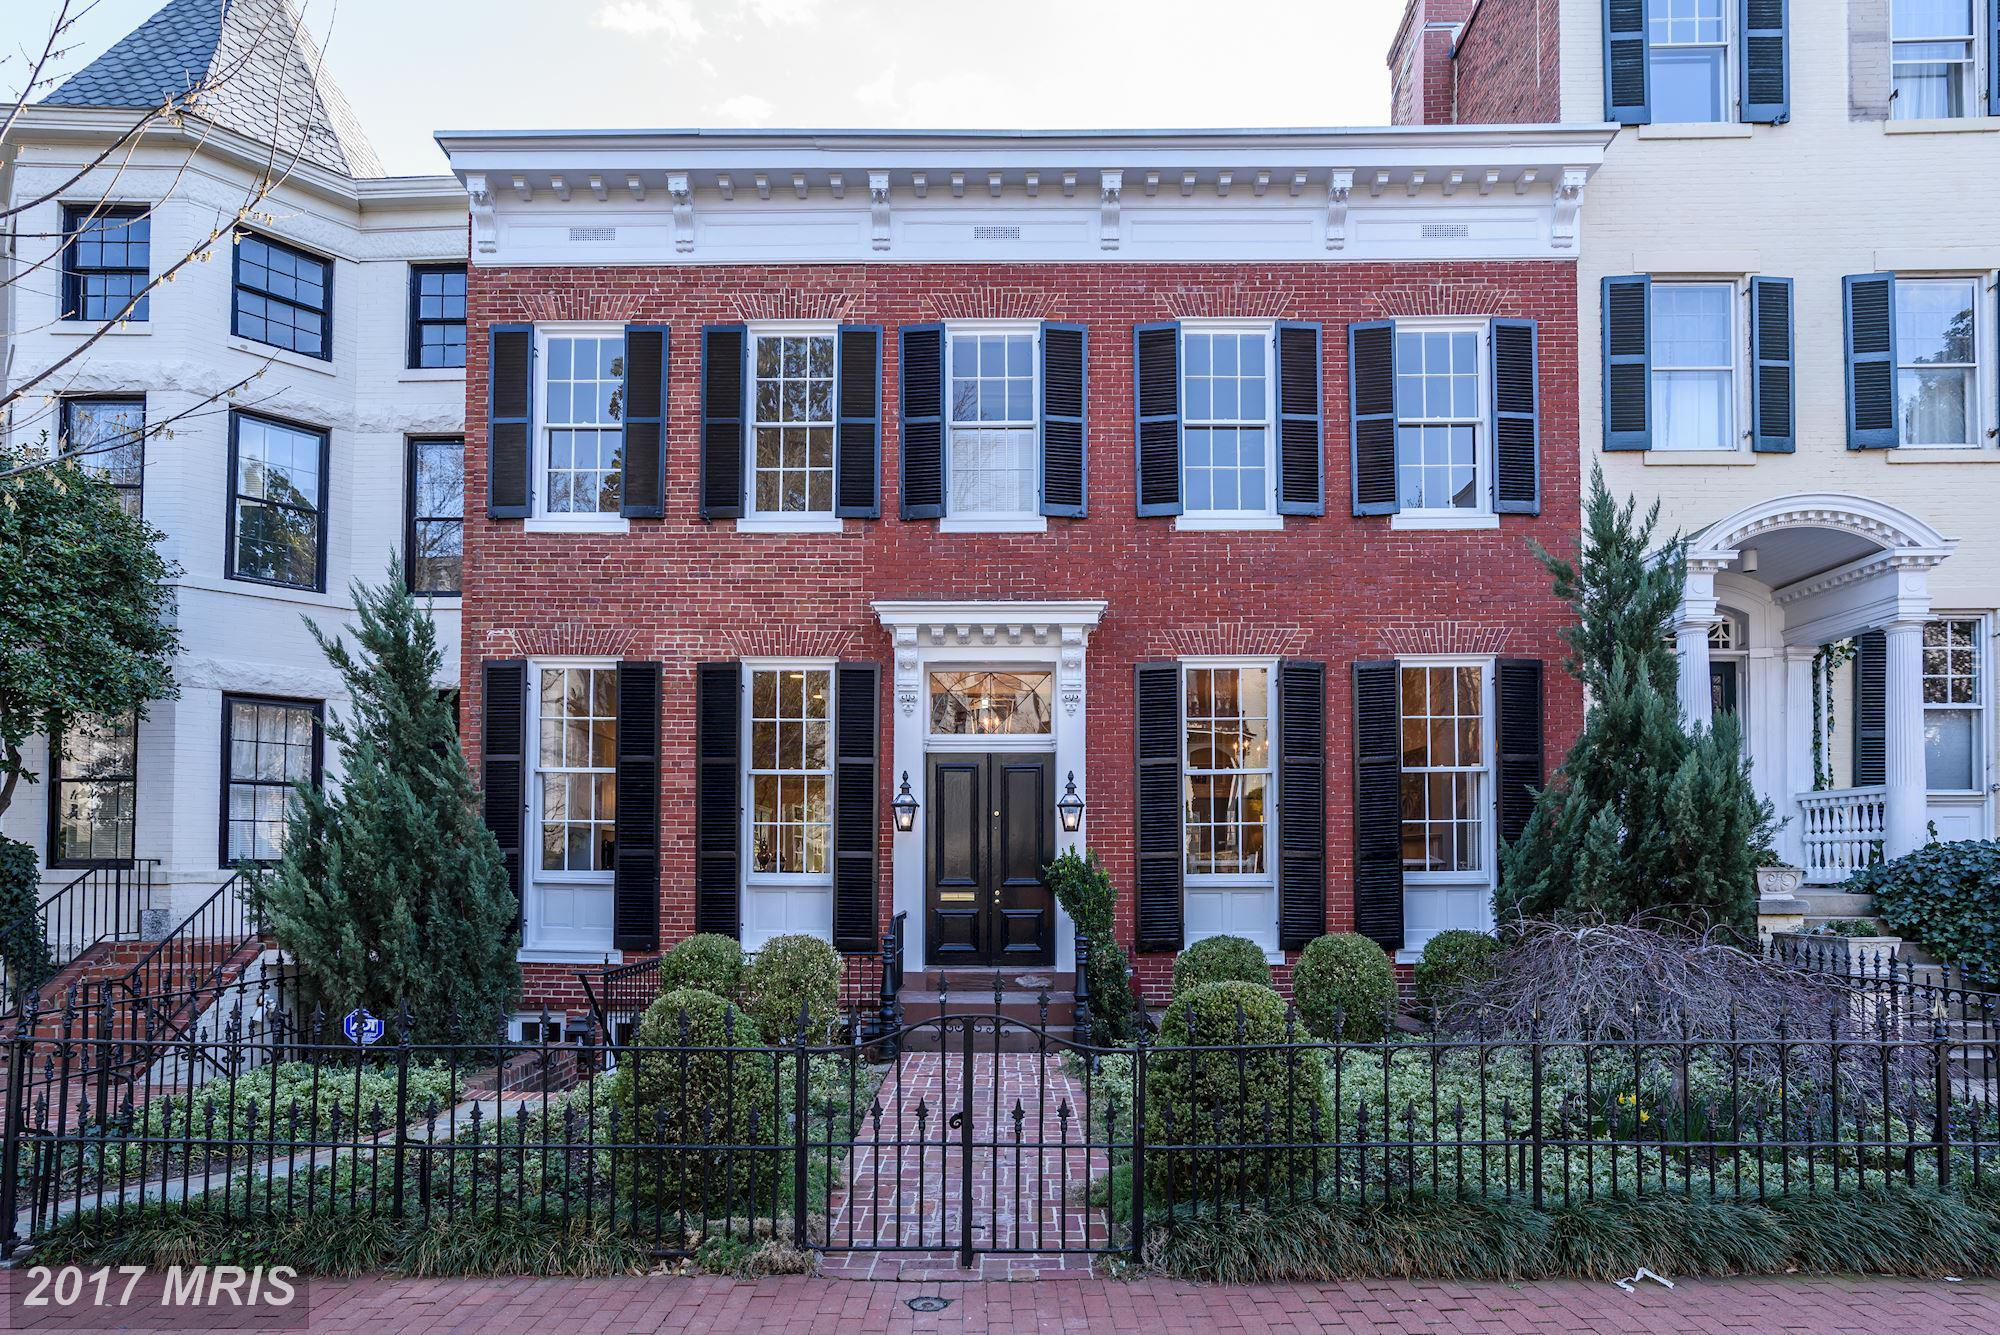 List price: $7,250,000 // Closing price: $6,750,000{&amp;nbsp;} // 6 bedrooms, 7 bathrooms // Built in 1900 // Federal style // Neighborhood: Georgetown // Listing agent:Nancy Taylor Bubes of Washington Fine Properties // Selling agent: Gregory Gaddy of TTR Sotheby's (Image: Courtesy Bright MLS)<br>